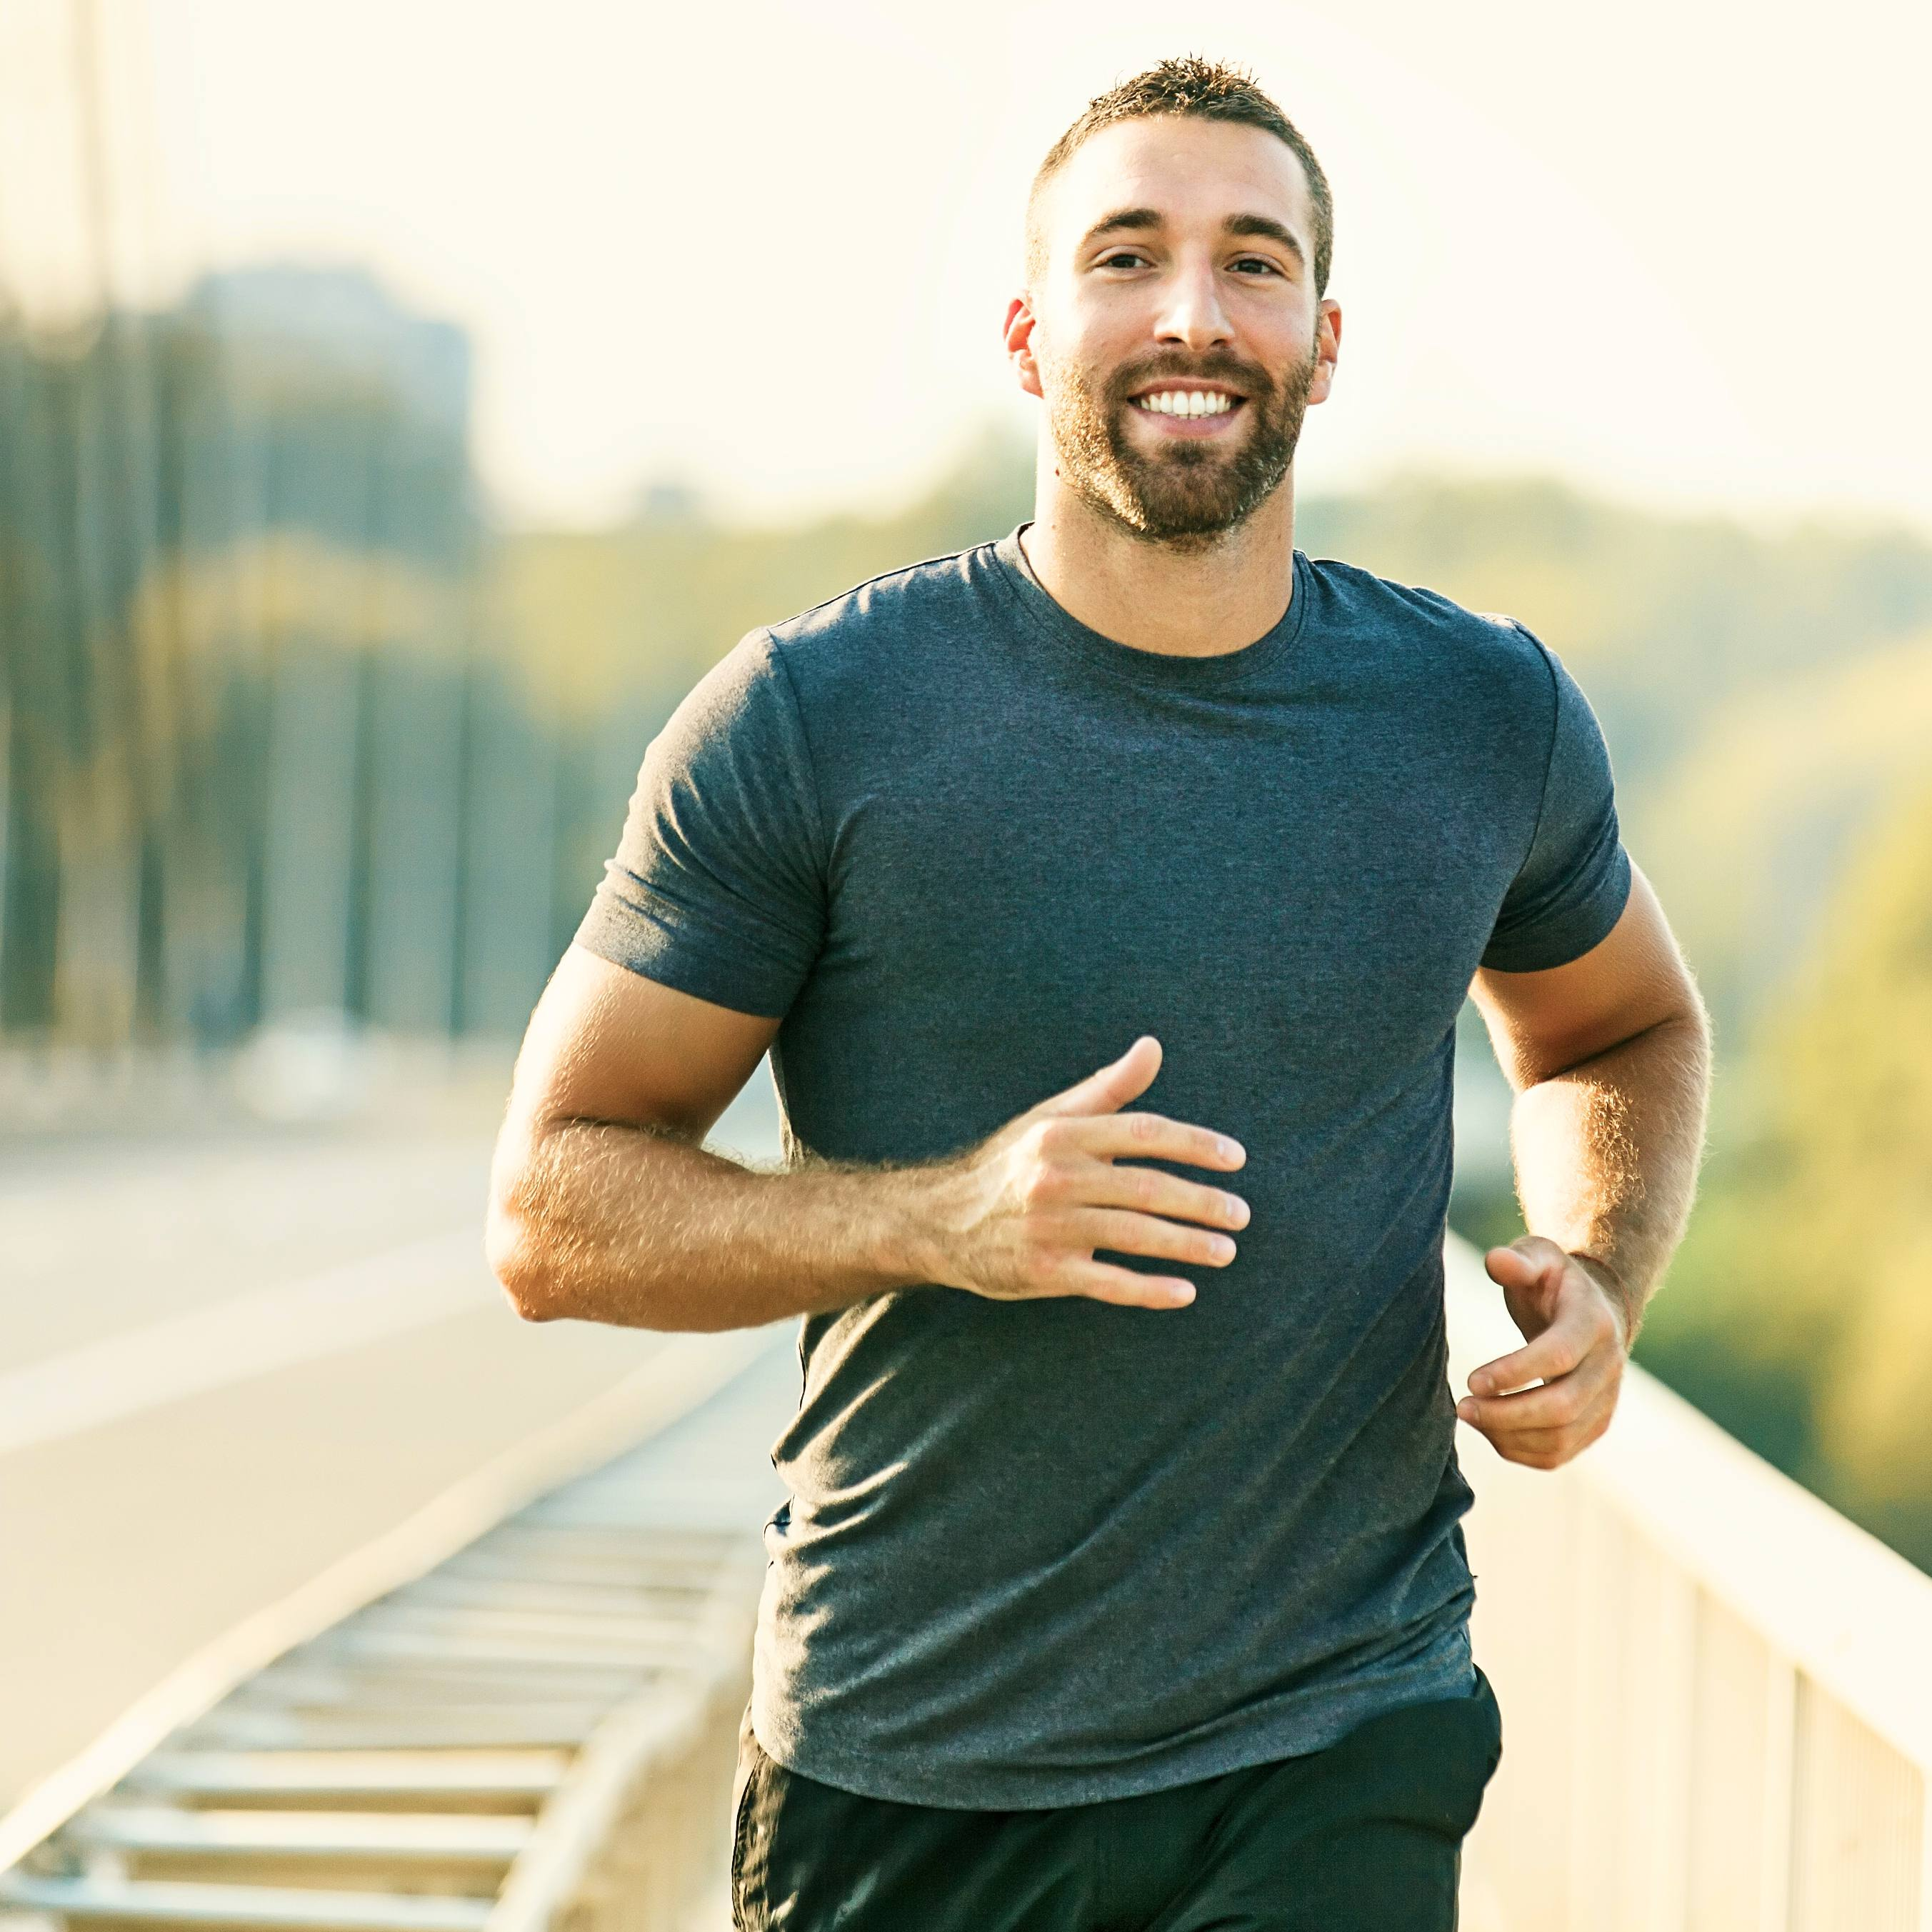 a young white man smiling while running, jogging, exercising outside